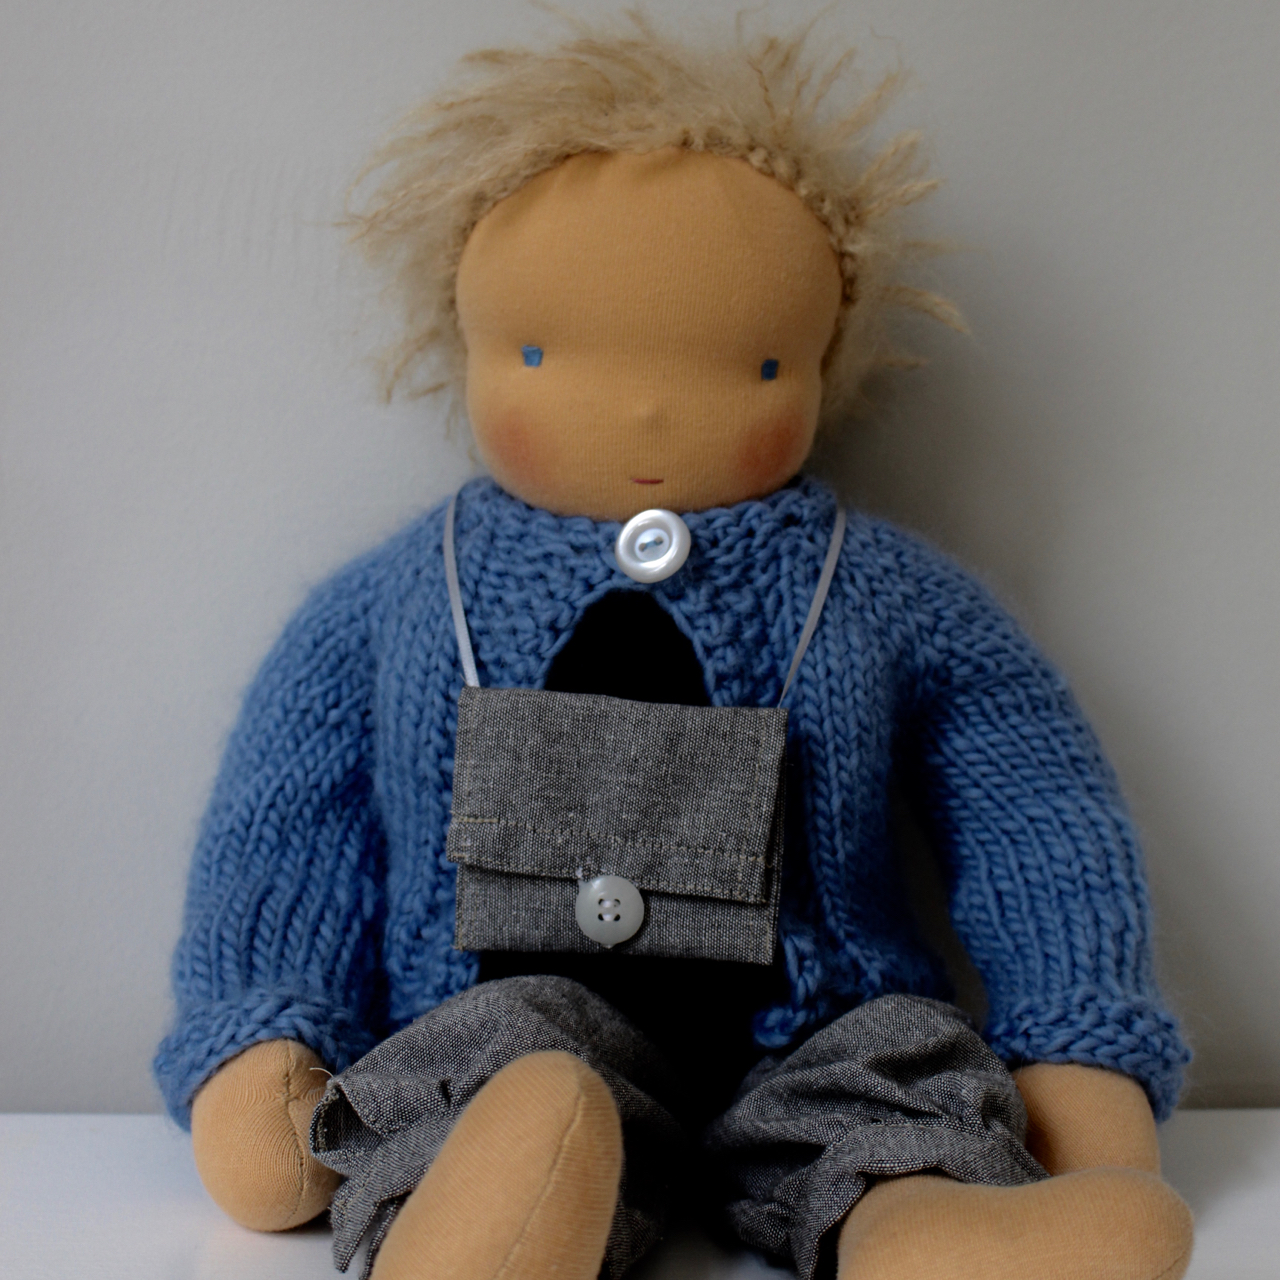 Waldorf doll boy, blond hair, with light blue hand-knitted cardigan and trousers, made by feinslieb